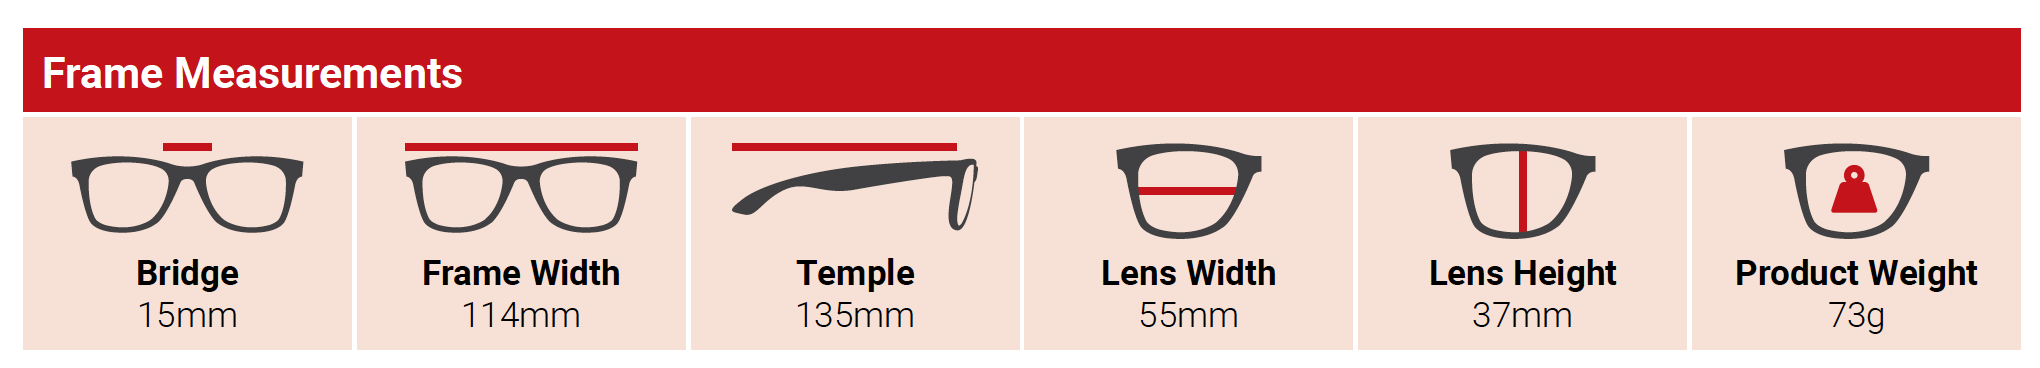 Frame measurements for lead glasses